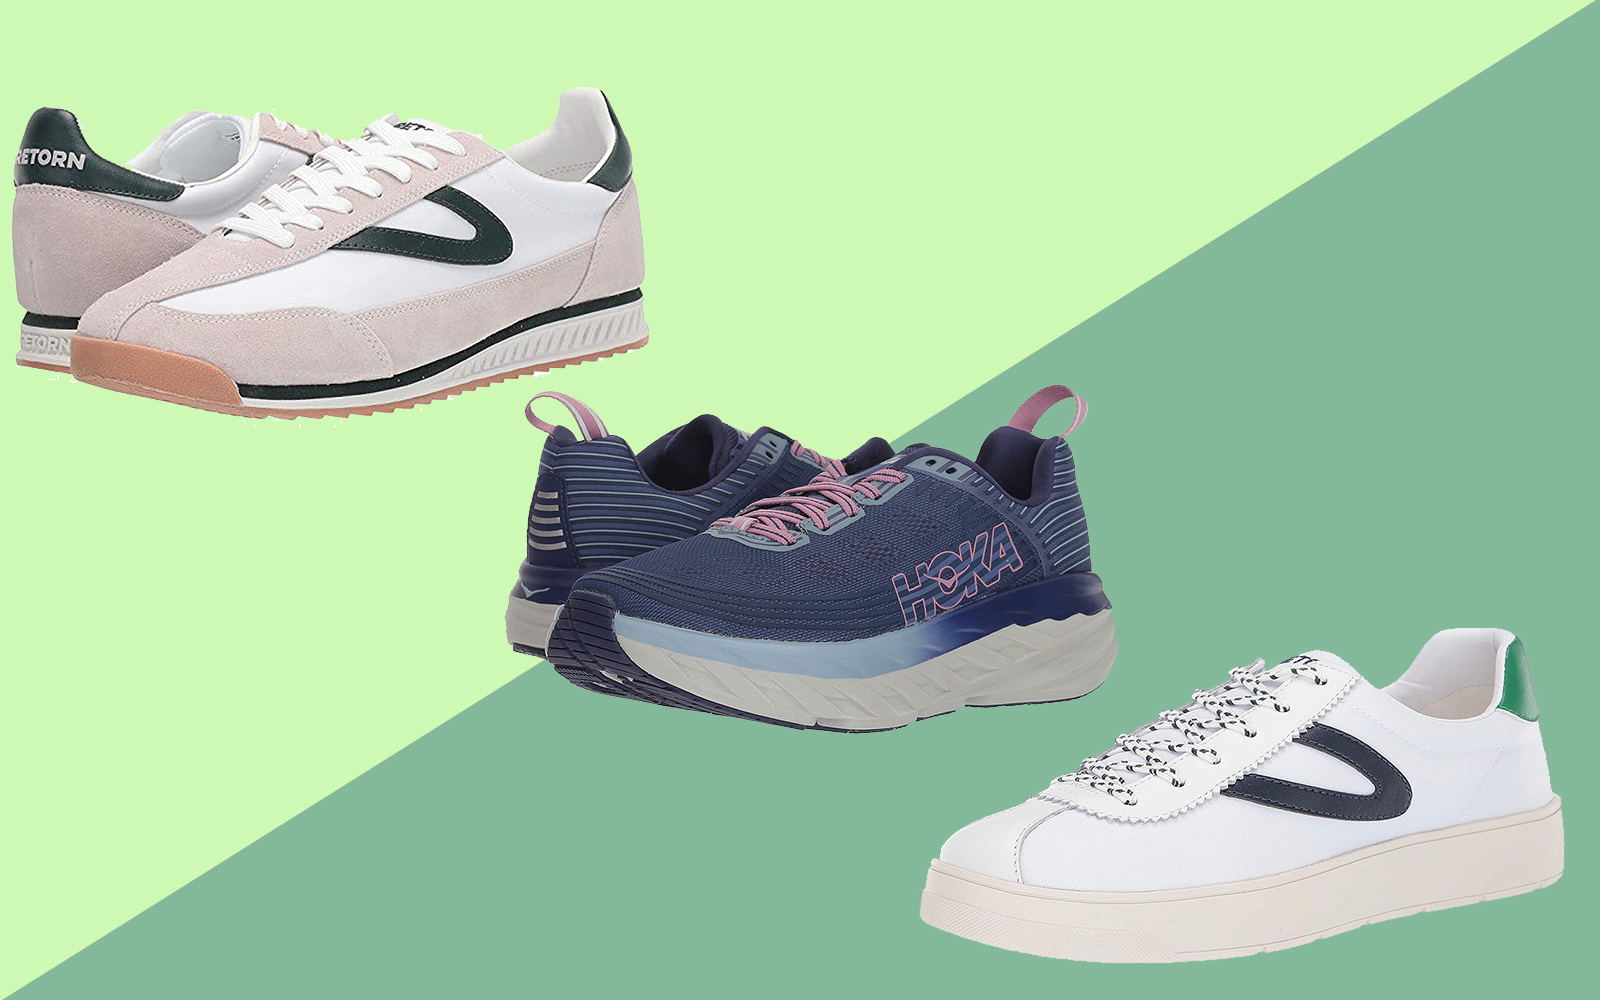 Reese Witherspoon's Comfortable and Stylish Sneaker Collection